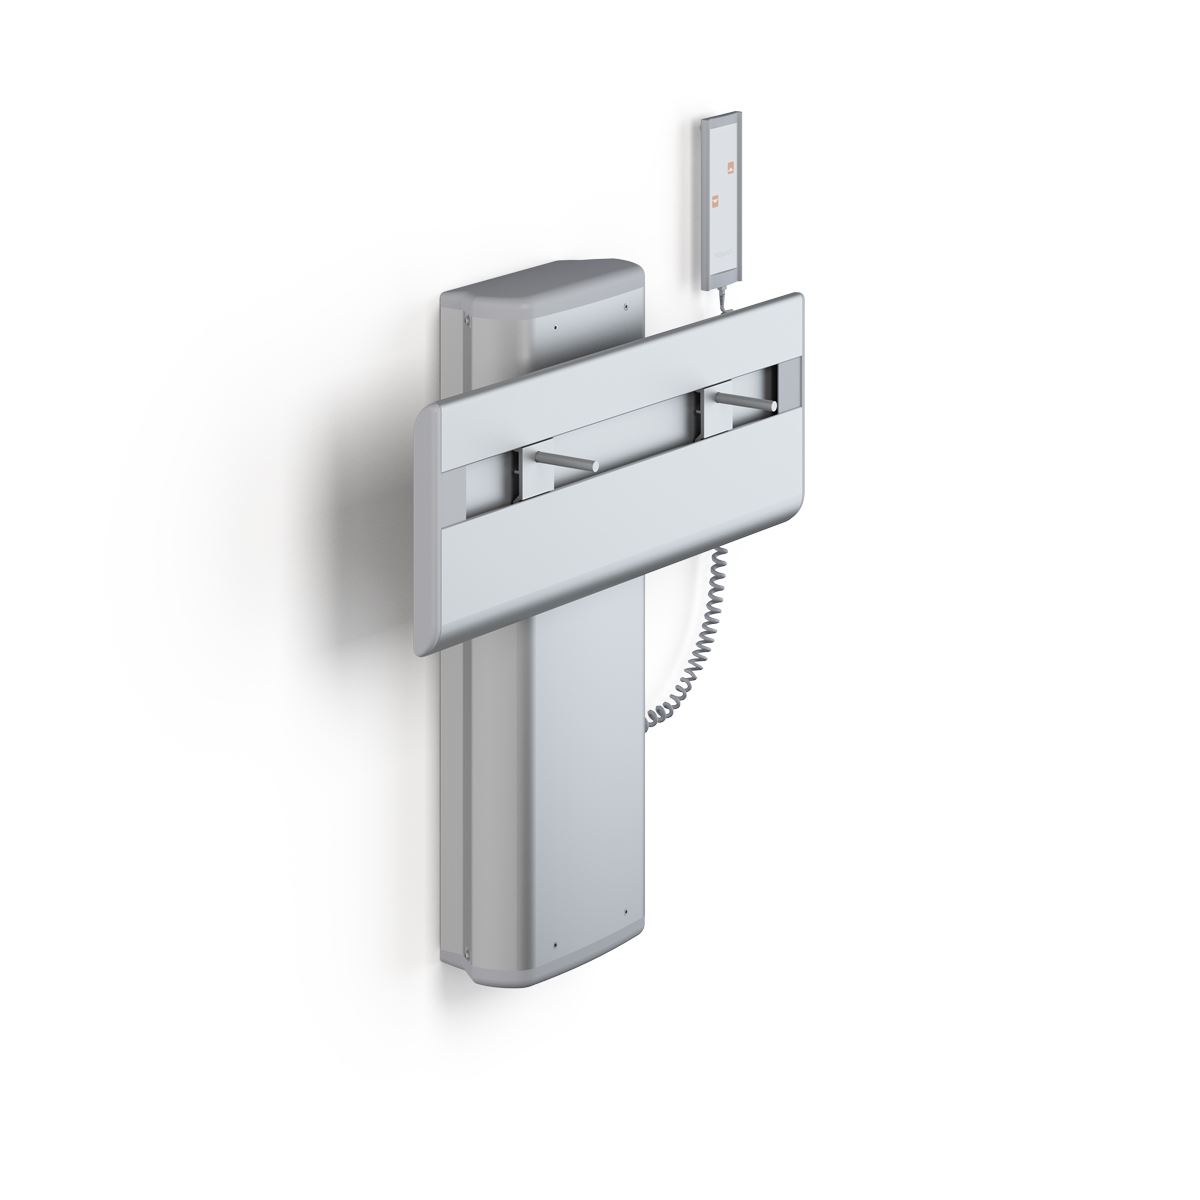 PLUS wash basin bracket with wired hand control, electrically height adjustable